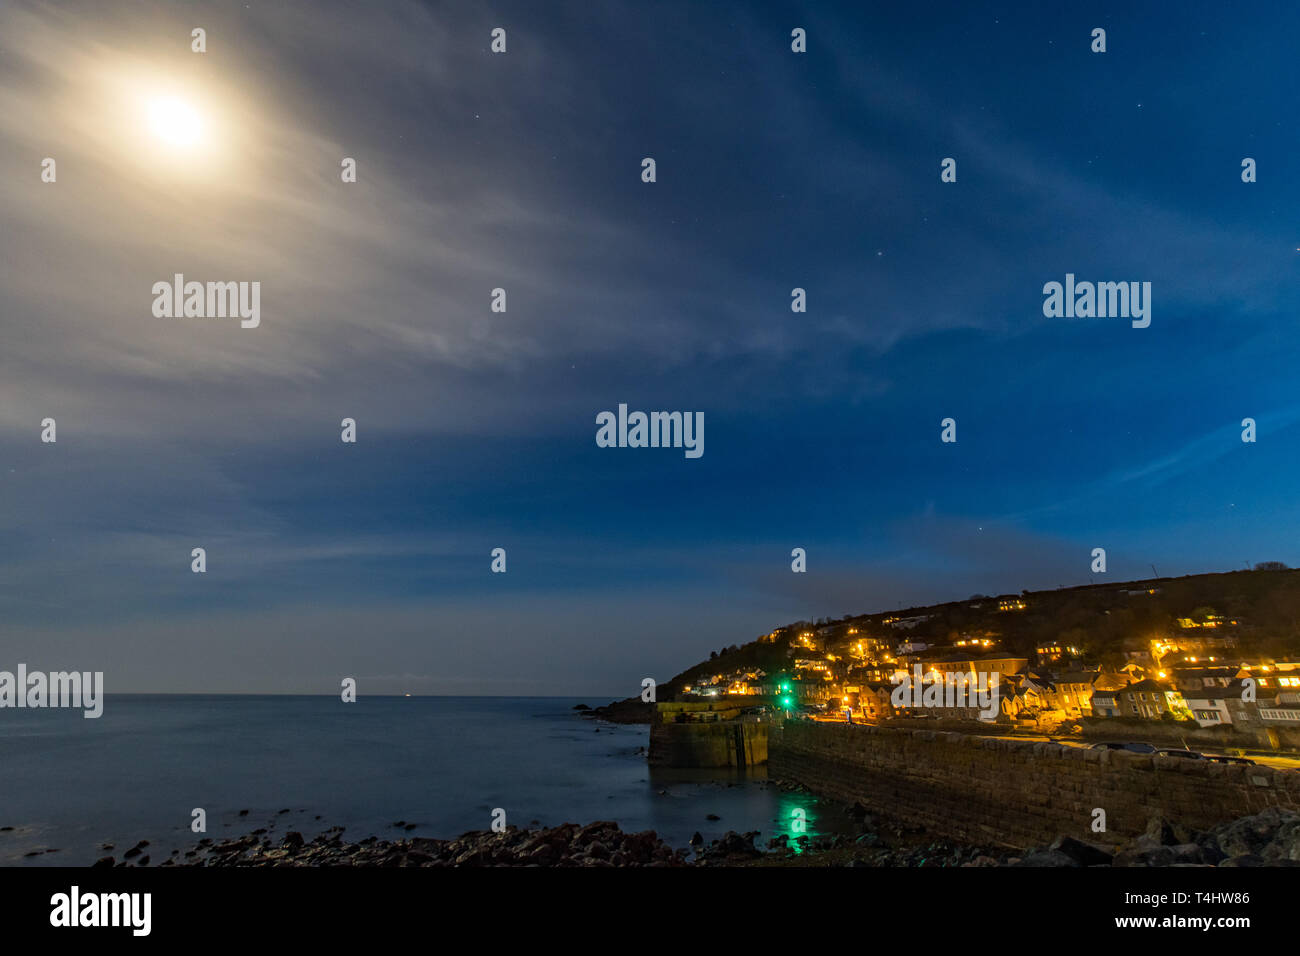 Mousehole, Cornwall, UK. 16th April 2019. UK Weather. After a day of sunshine, clear skies in the evening revealing the nearly full moon over the harbour town of Mousehole. Credit: Simon Maycock/Alamy Live News Stock Photo